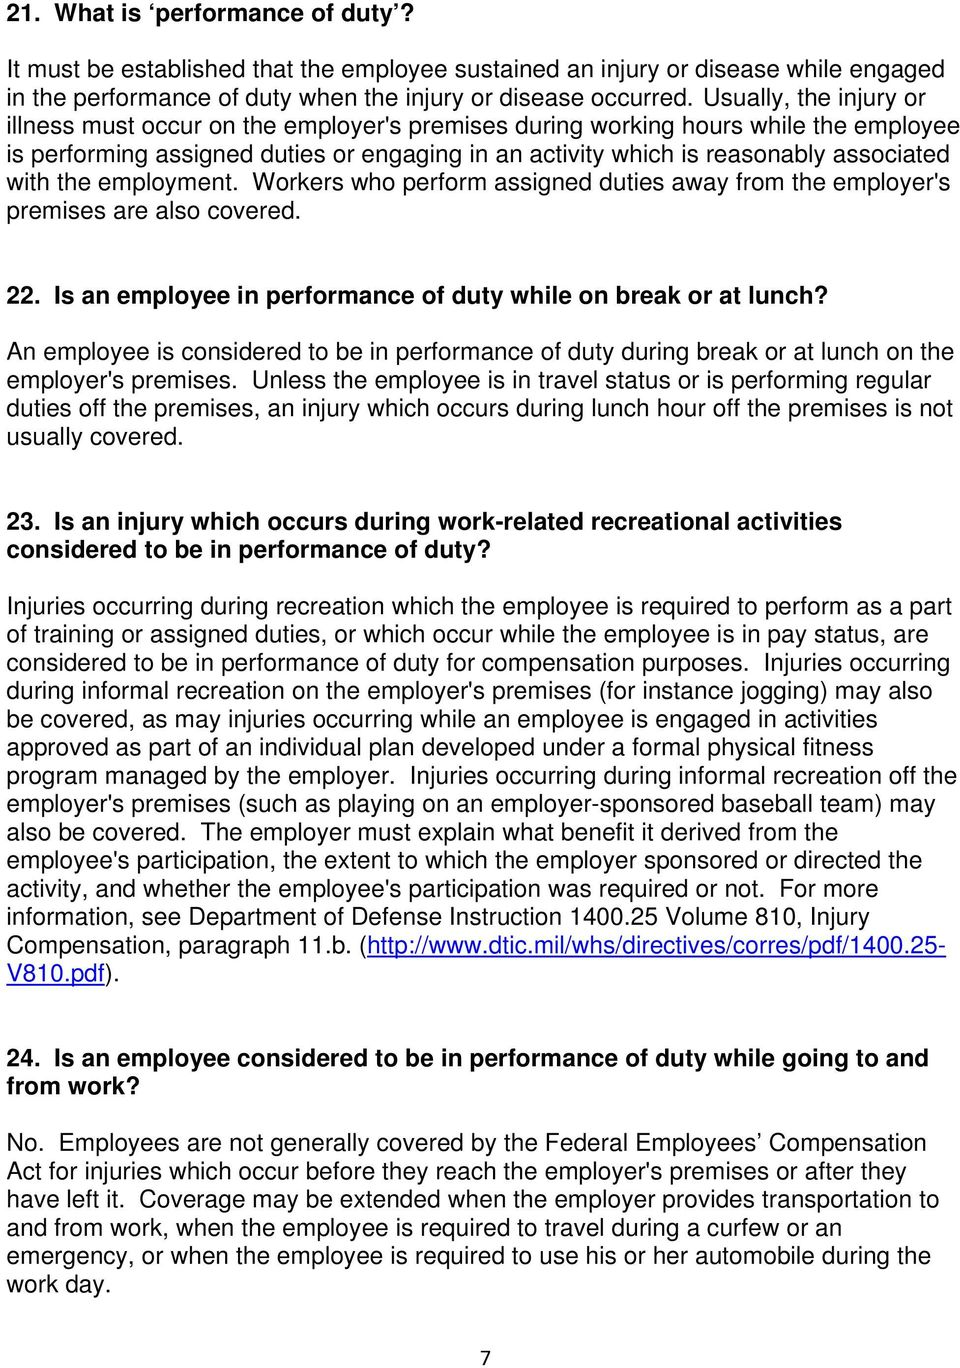 with the employment. Workers who perform assigned duties away from the employer's premises are also covered. 22. Is an employee in performance of duty while on break or at lunch?